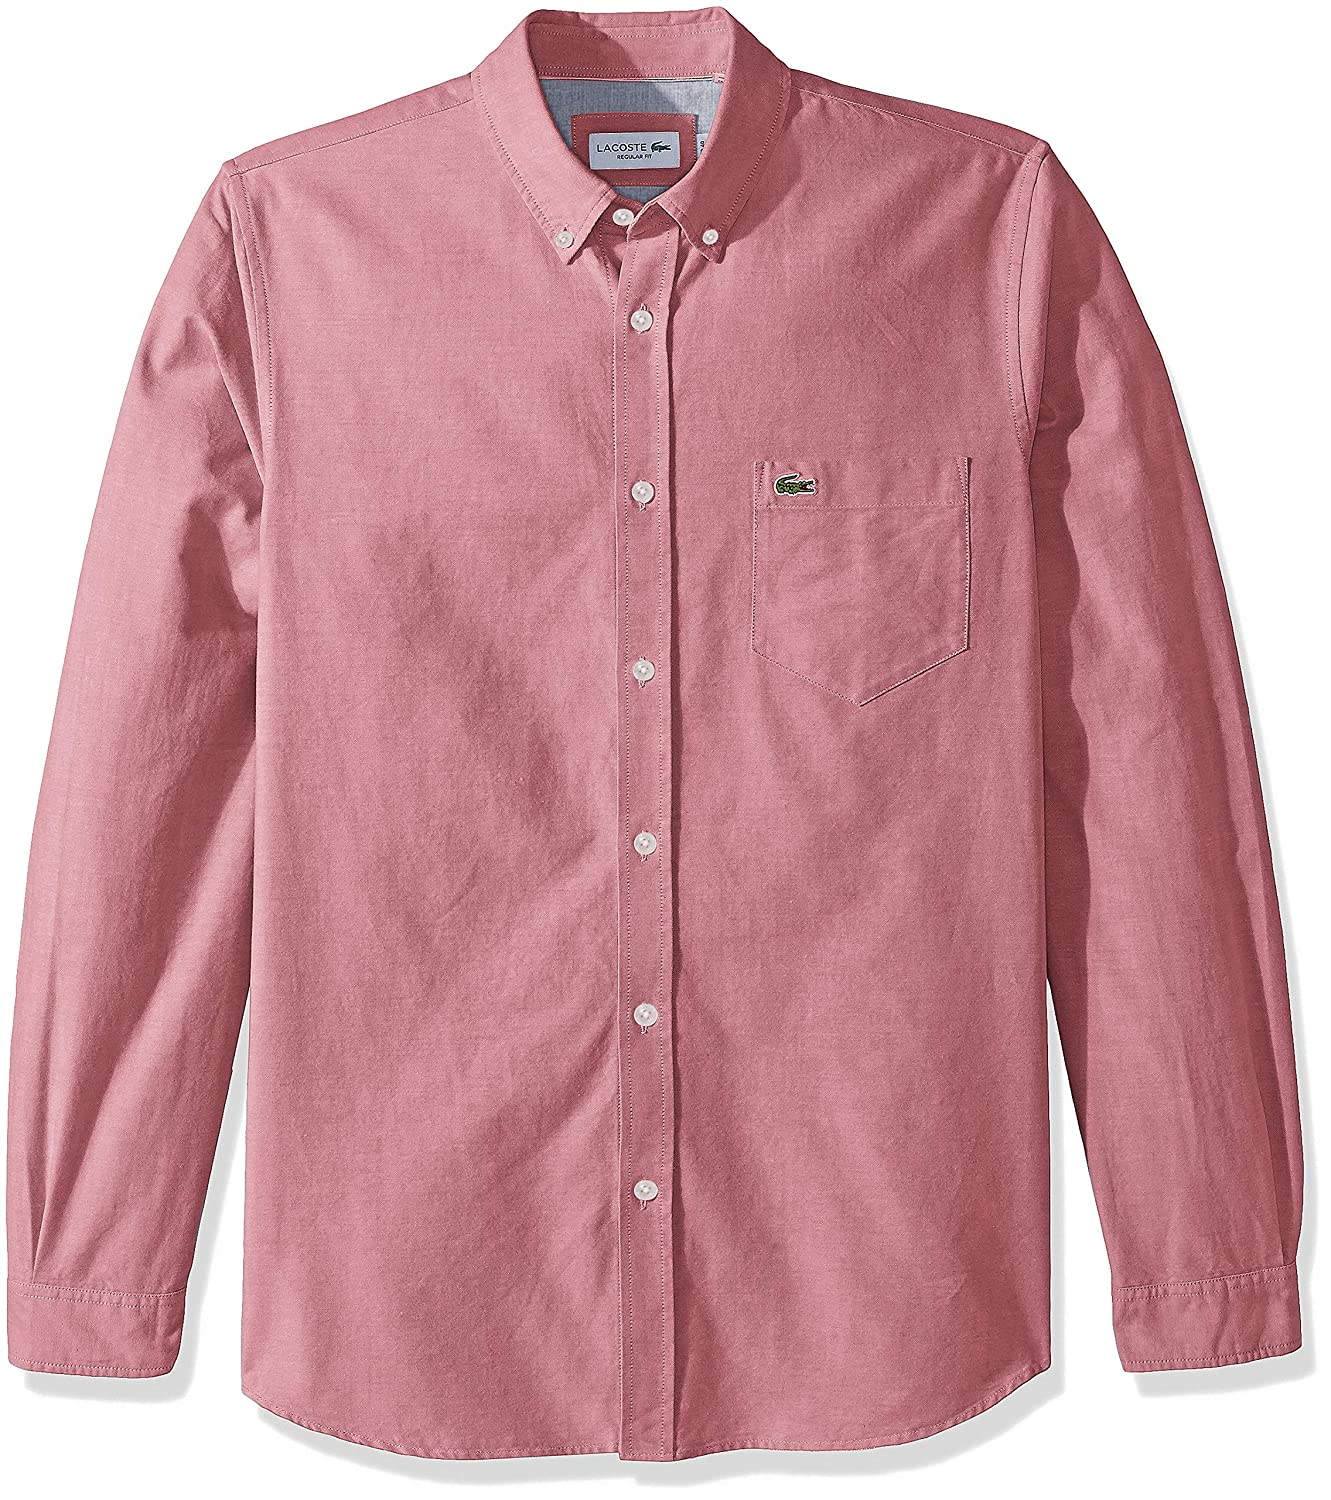 a4ef516000d2 Lacoste Men s Long Sleeve Oxford Button Down Collar Regular Fit Woven Shirt